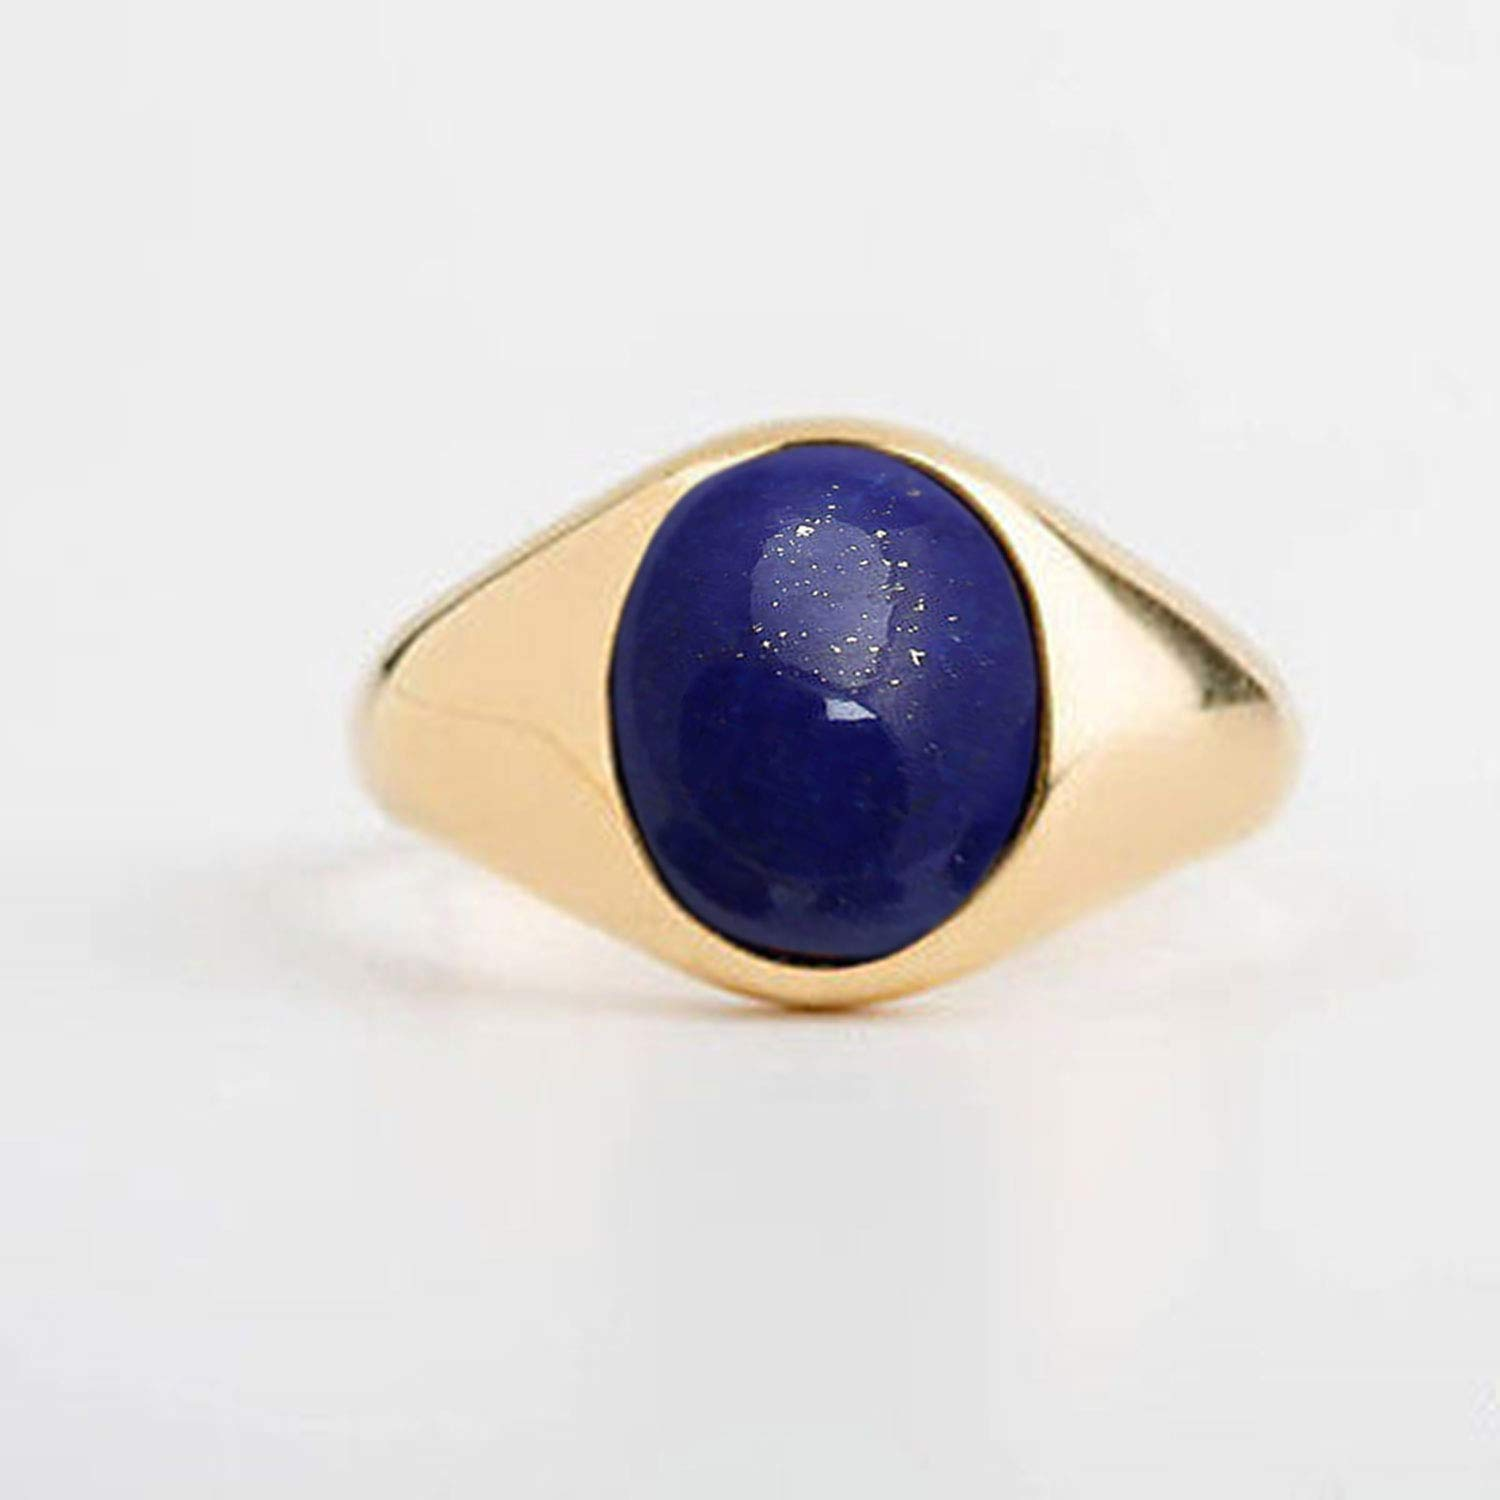 Natural Deep Blue Afghani Lapis Lazulie Ring Genuine Gemstone Mans Statement Ring Solid 925 Silver Ring Vermeil Yellow Gold Ring Oval Cab Gemstone Ring Handcrafted Ring Mens Gemstone Jewelry